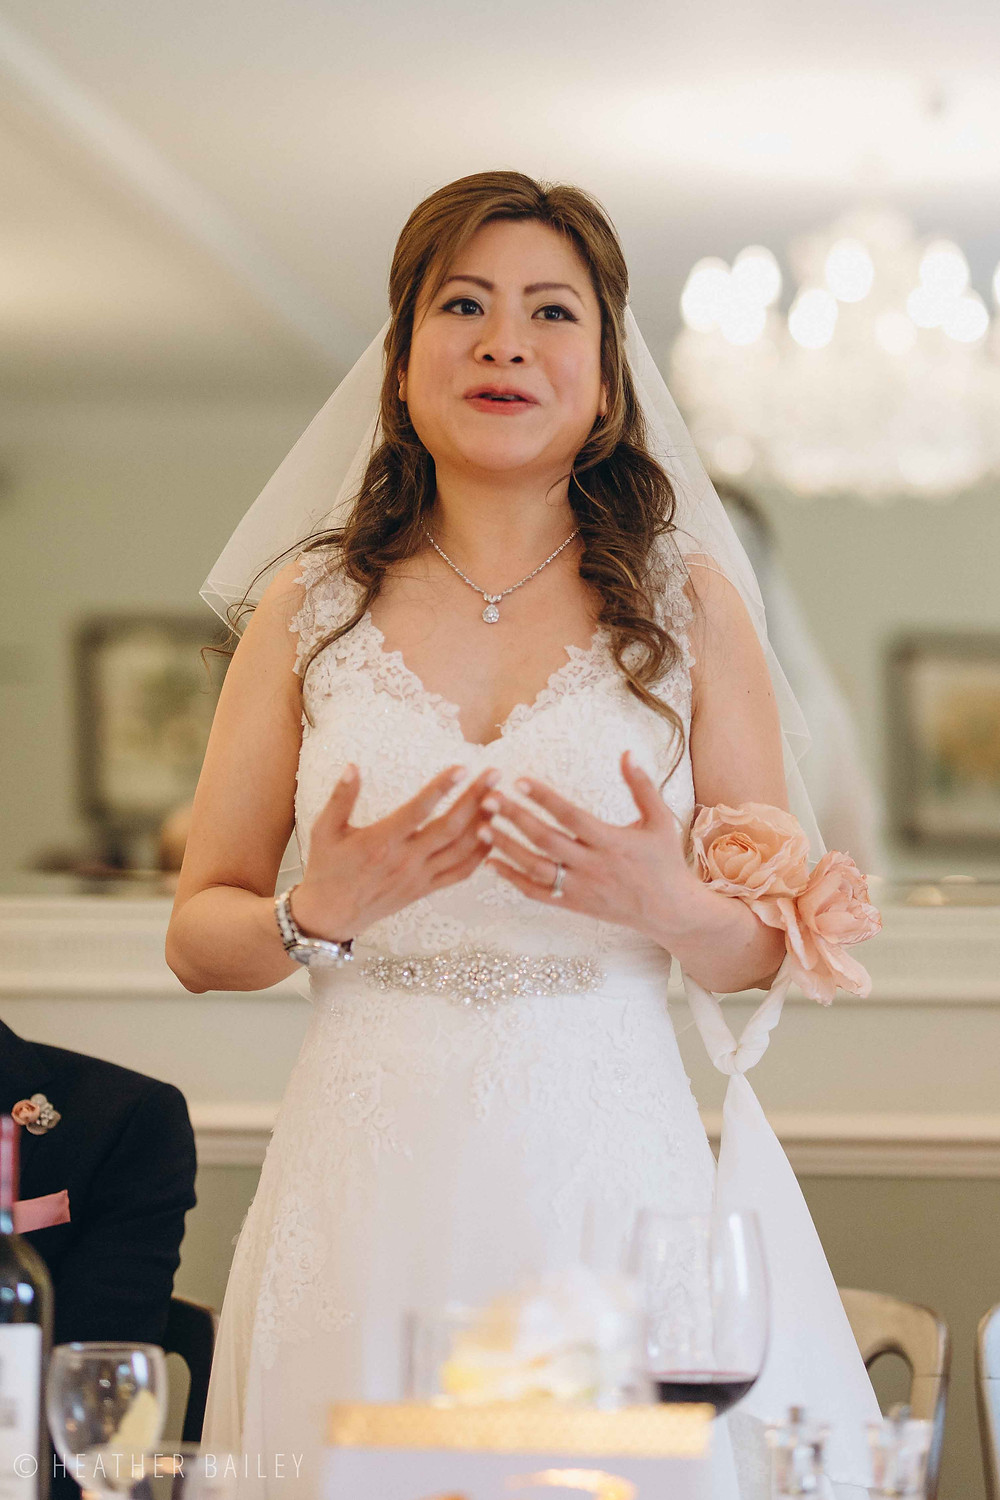 Brides Speech - Photographer at Beechfield House, Melksham, Wiltshire - Heather Bailey Wedding Photography and Videography